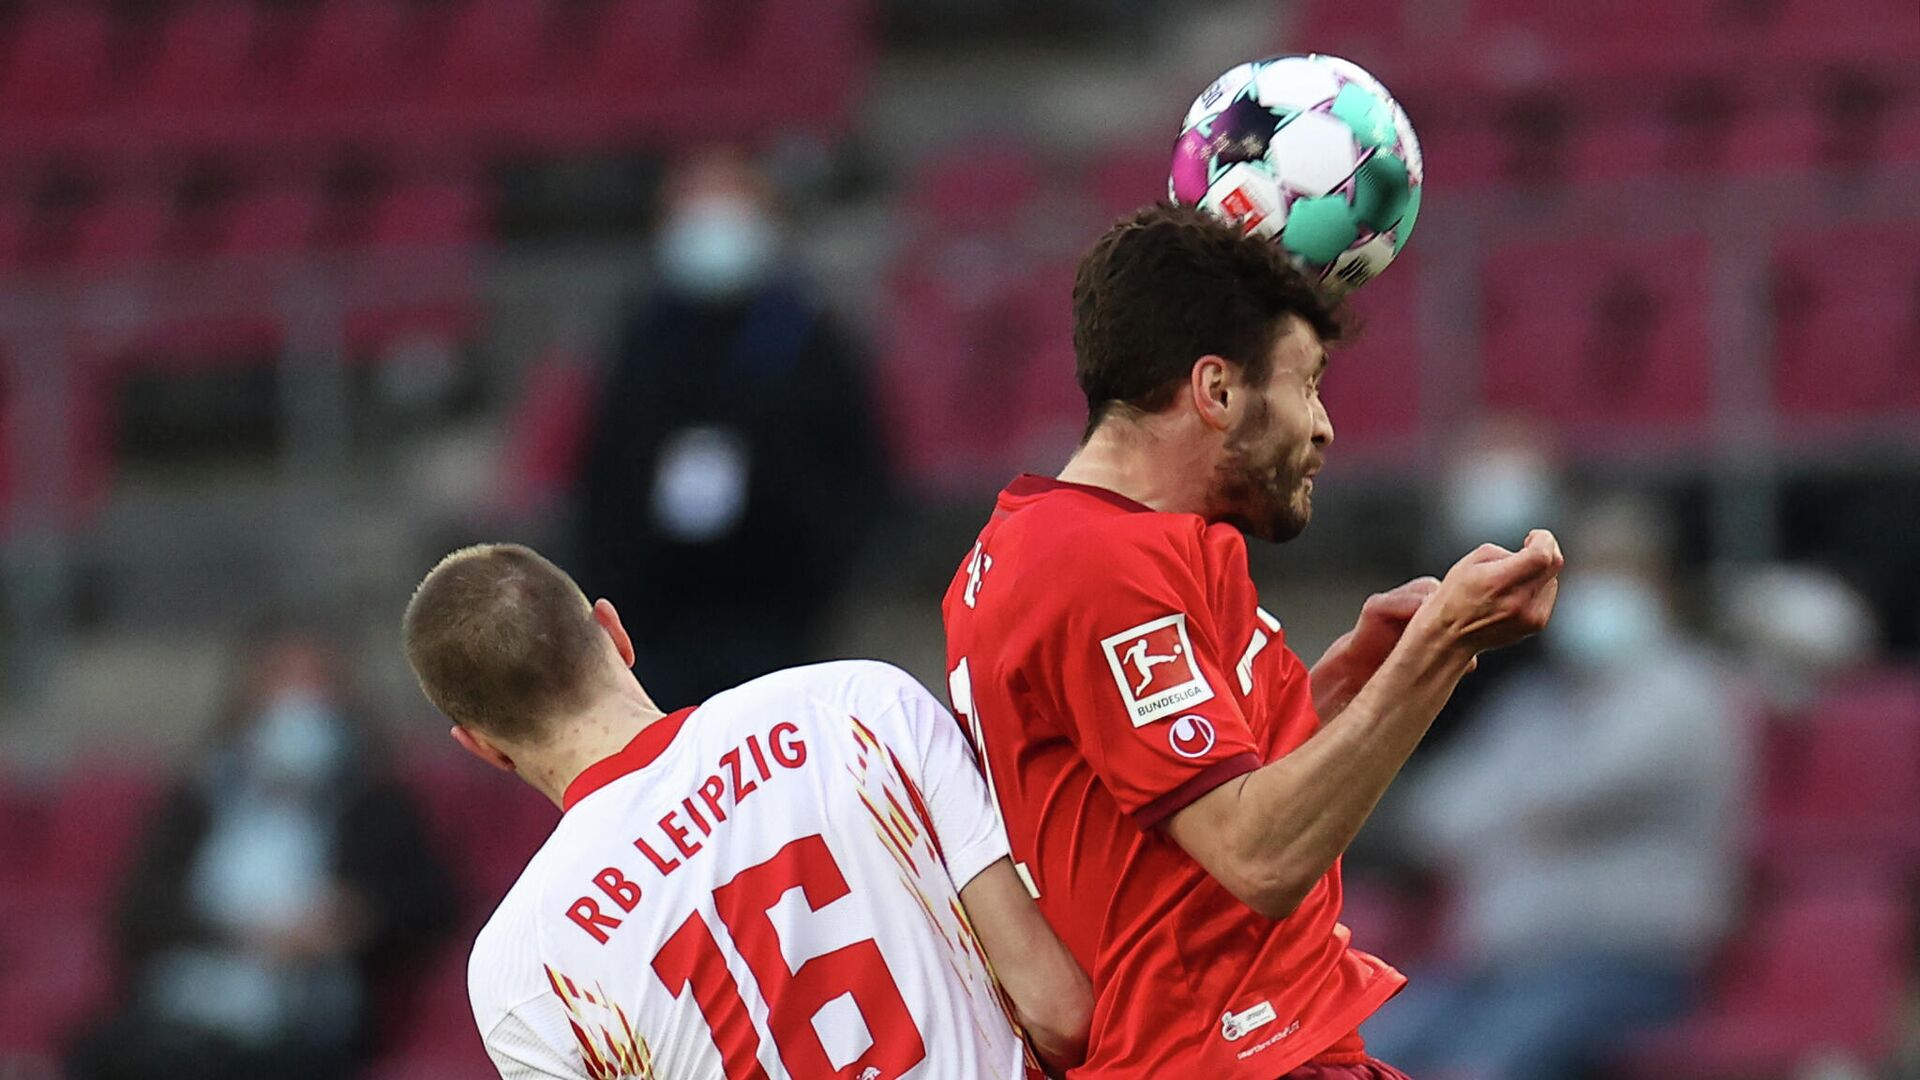 Leipzig's German defender Lukas Klostermann (L0 and Cologne's German defender Jonas Hector vie for the ball during the German first division Bundesliga football match FC Cologne vs RB Leipzig, in Cologne, western Germany, on April 20, 2021. (Photo by Rolf Vennenbernd / POOL / AFP) / DFL REGULATIONS PROHIBIT ANY USE OF PHOTOGRAPHS AS IMAGE SEQUENCES AND/OR QUASI-VIDEO - РИА Новости, 1920, 20.04.2021